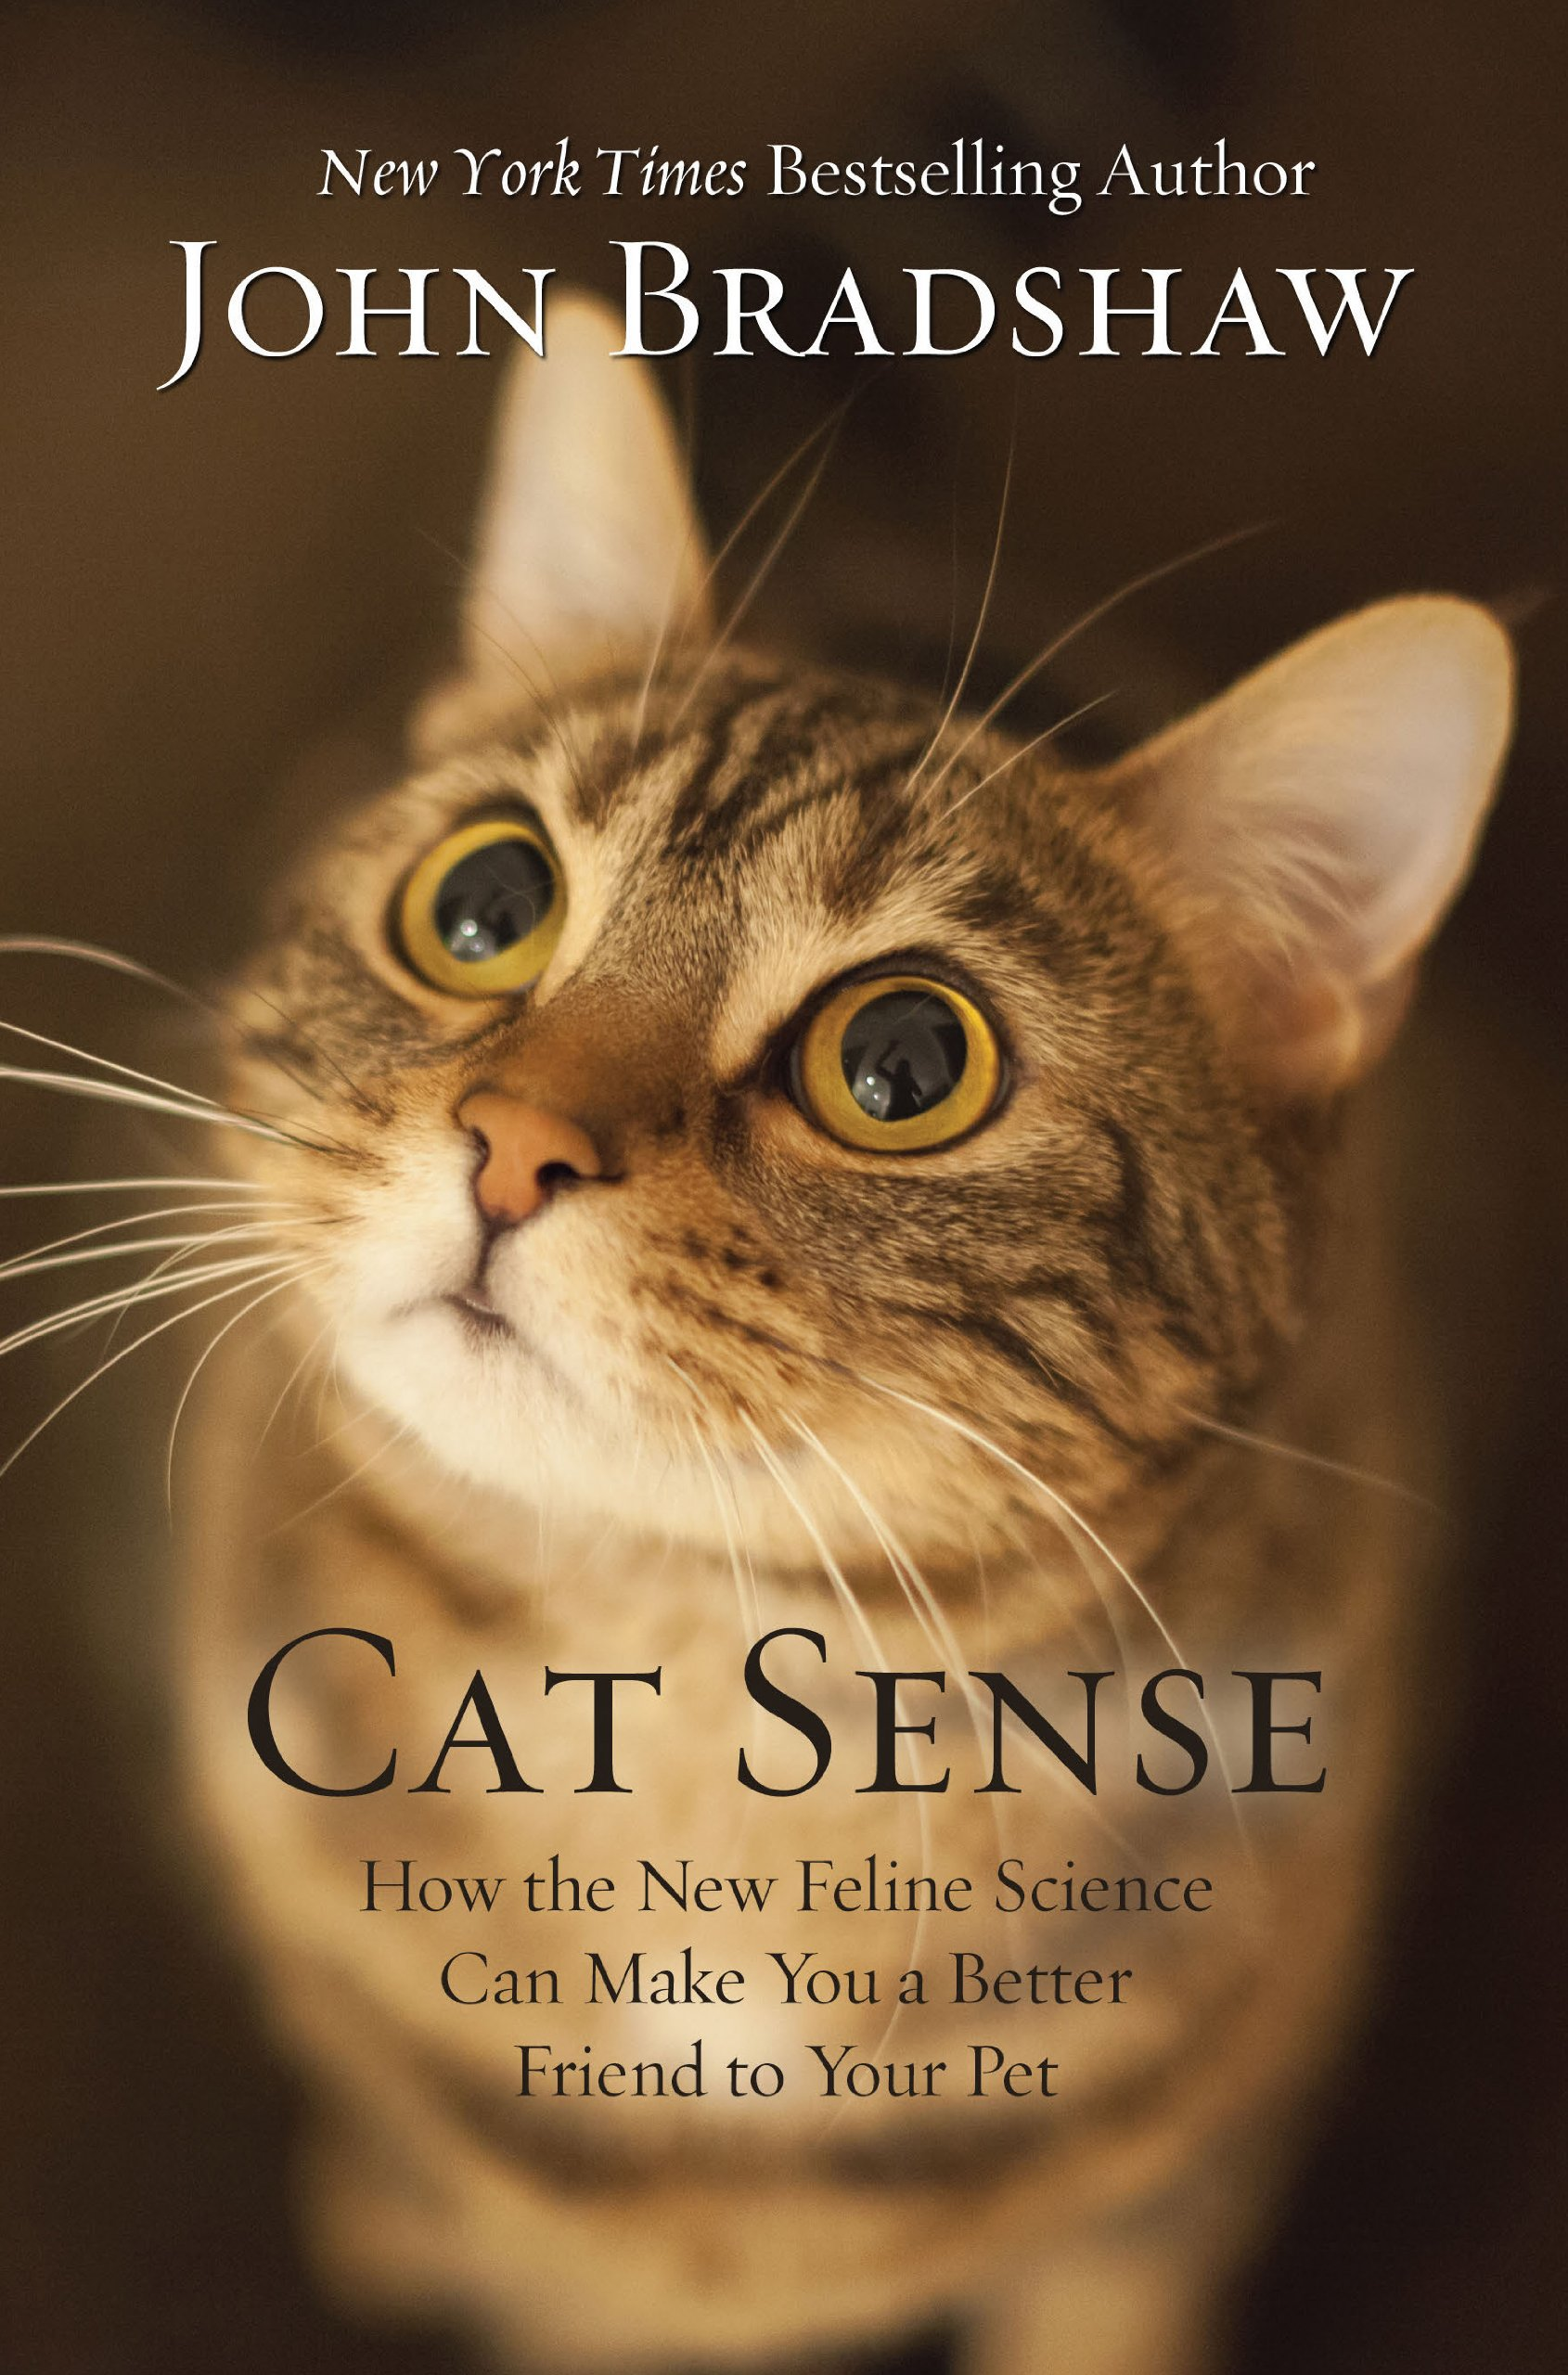 Download Cat Sense: How the New Feline Science Can Make You a Better Friend to Your Pet (Thorndike Press large print nonfiction) pdf